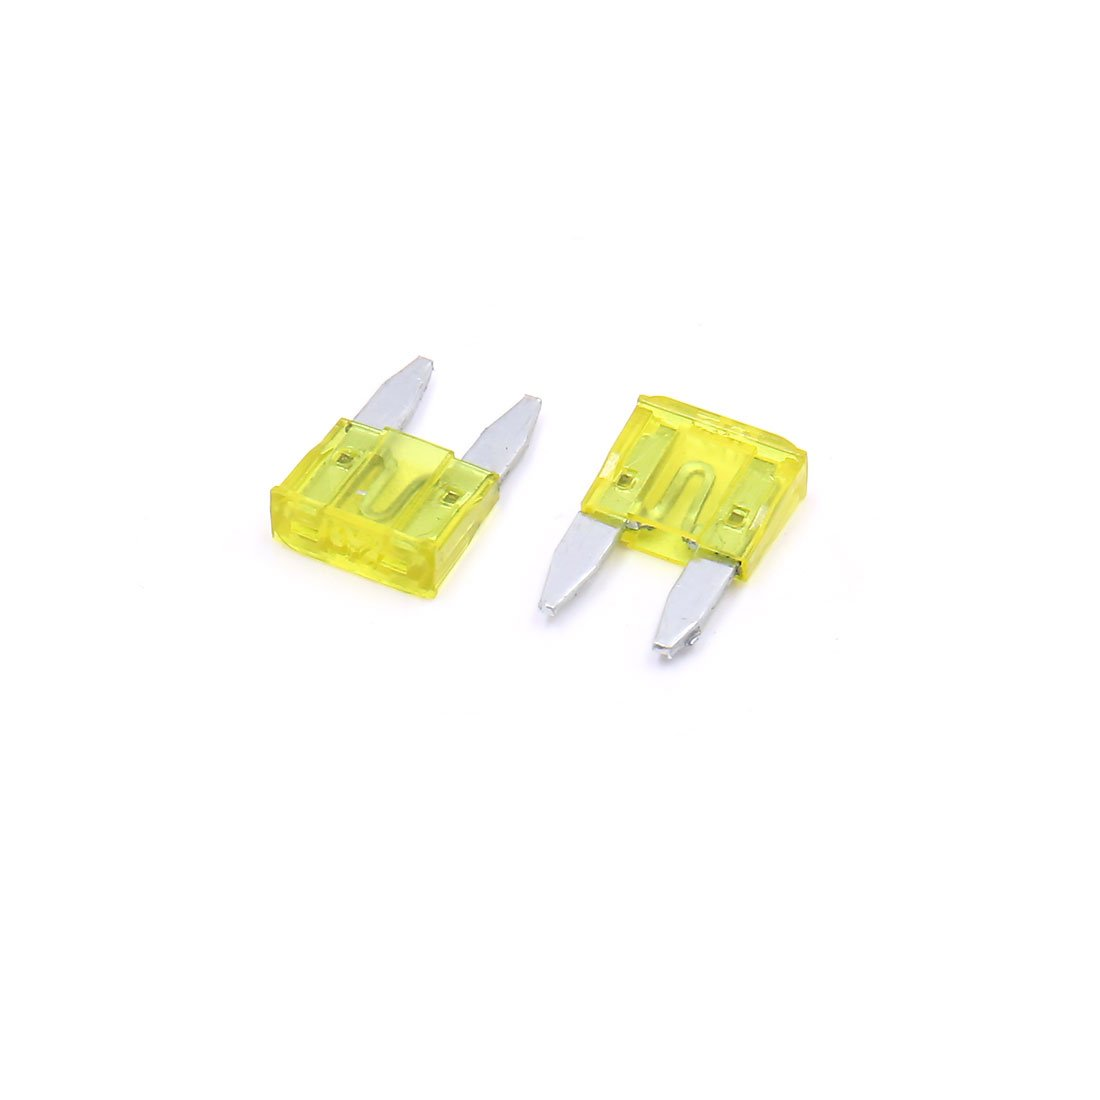 uxcell 200pcs 20A Yellow Plastic Case Small Blade Style Fuse for Car Vehicle Motorcycle a17061500ux0767